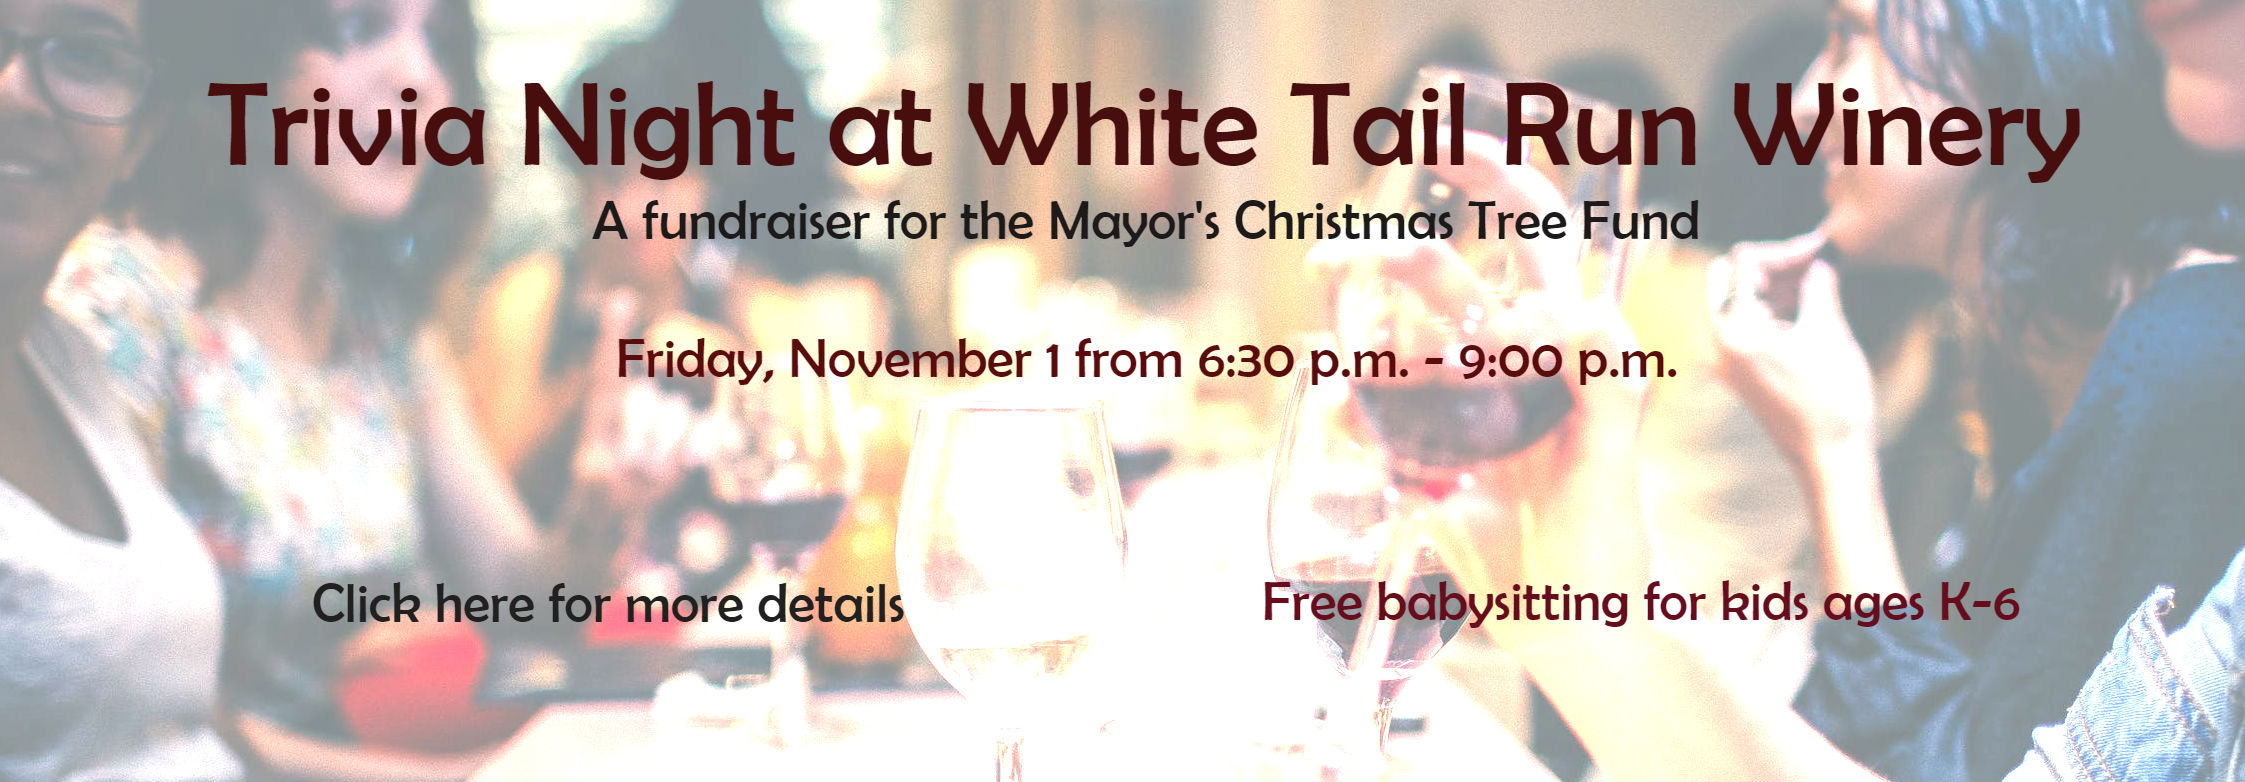 Trivia Night at White Tail Run Winery: A fundraiser for the Mayor's Christmas Tree Fund. Friday, November 1 from 6:30-9 p.m. Free babysitting for children ages K-6.